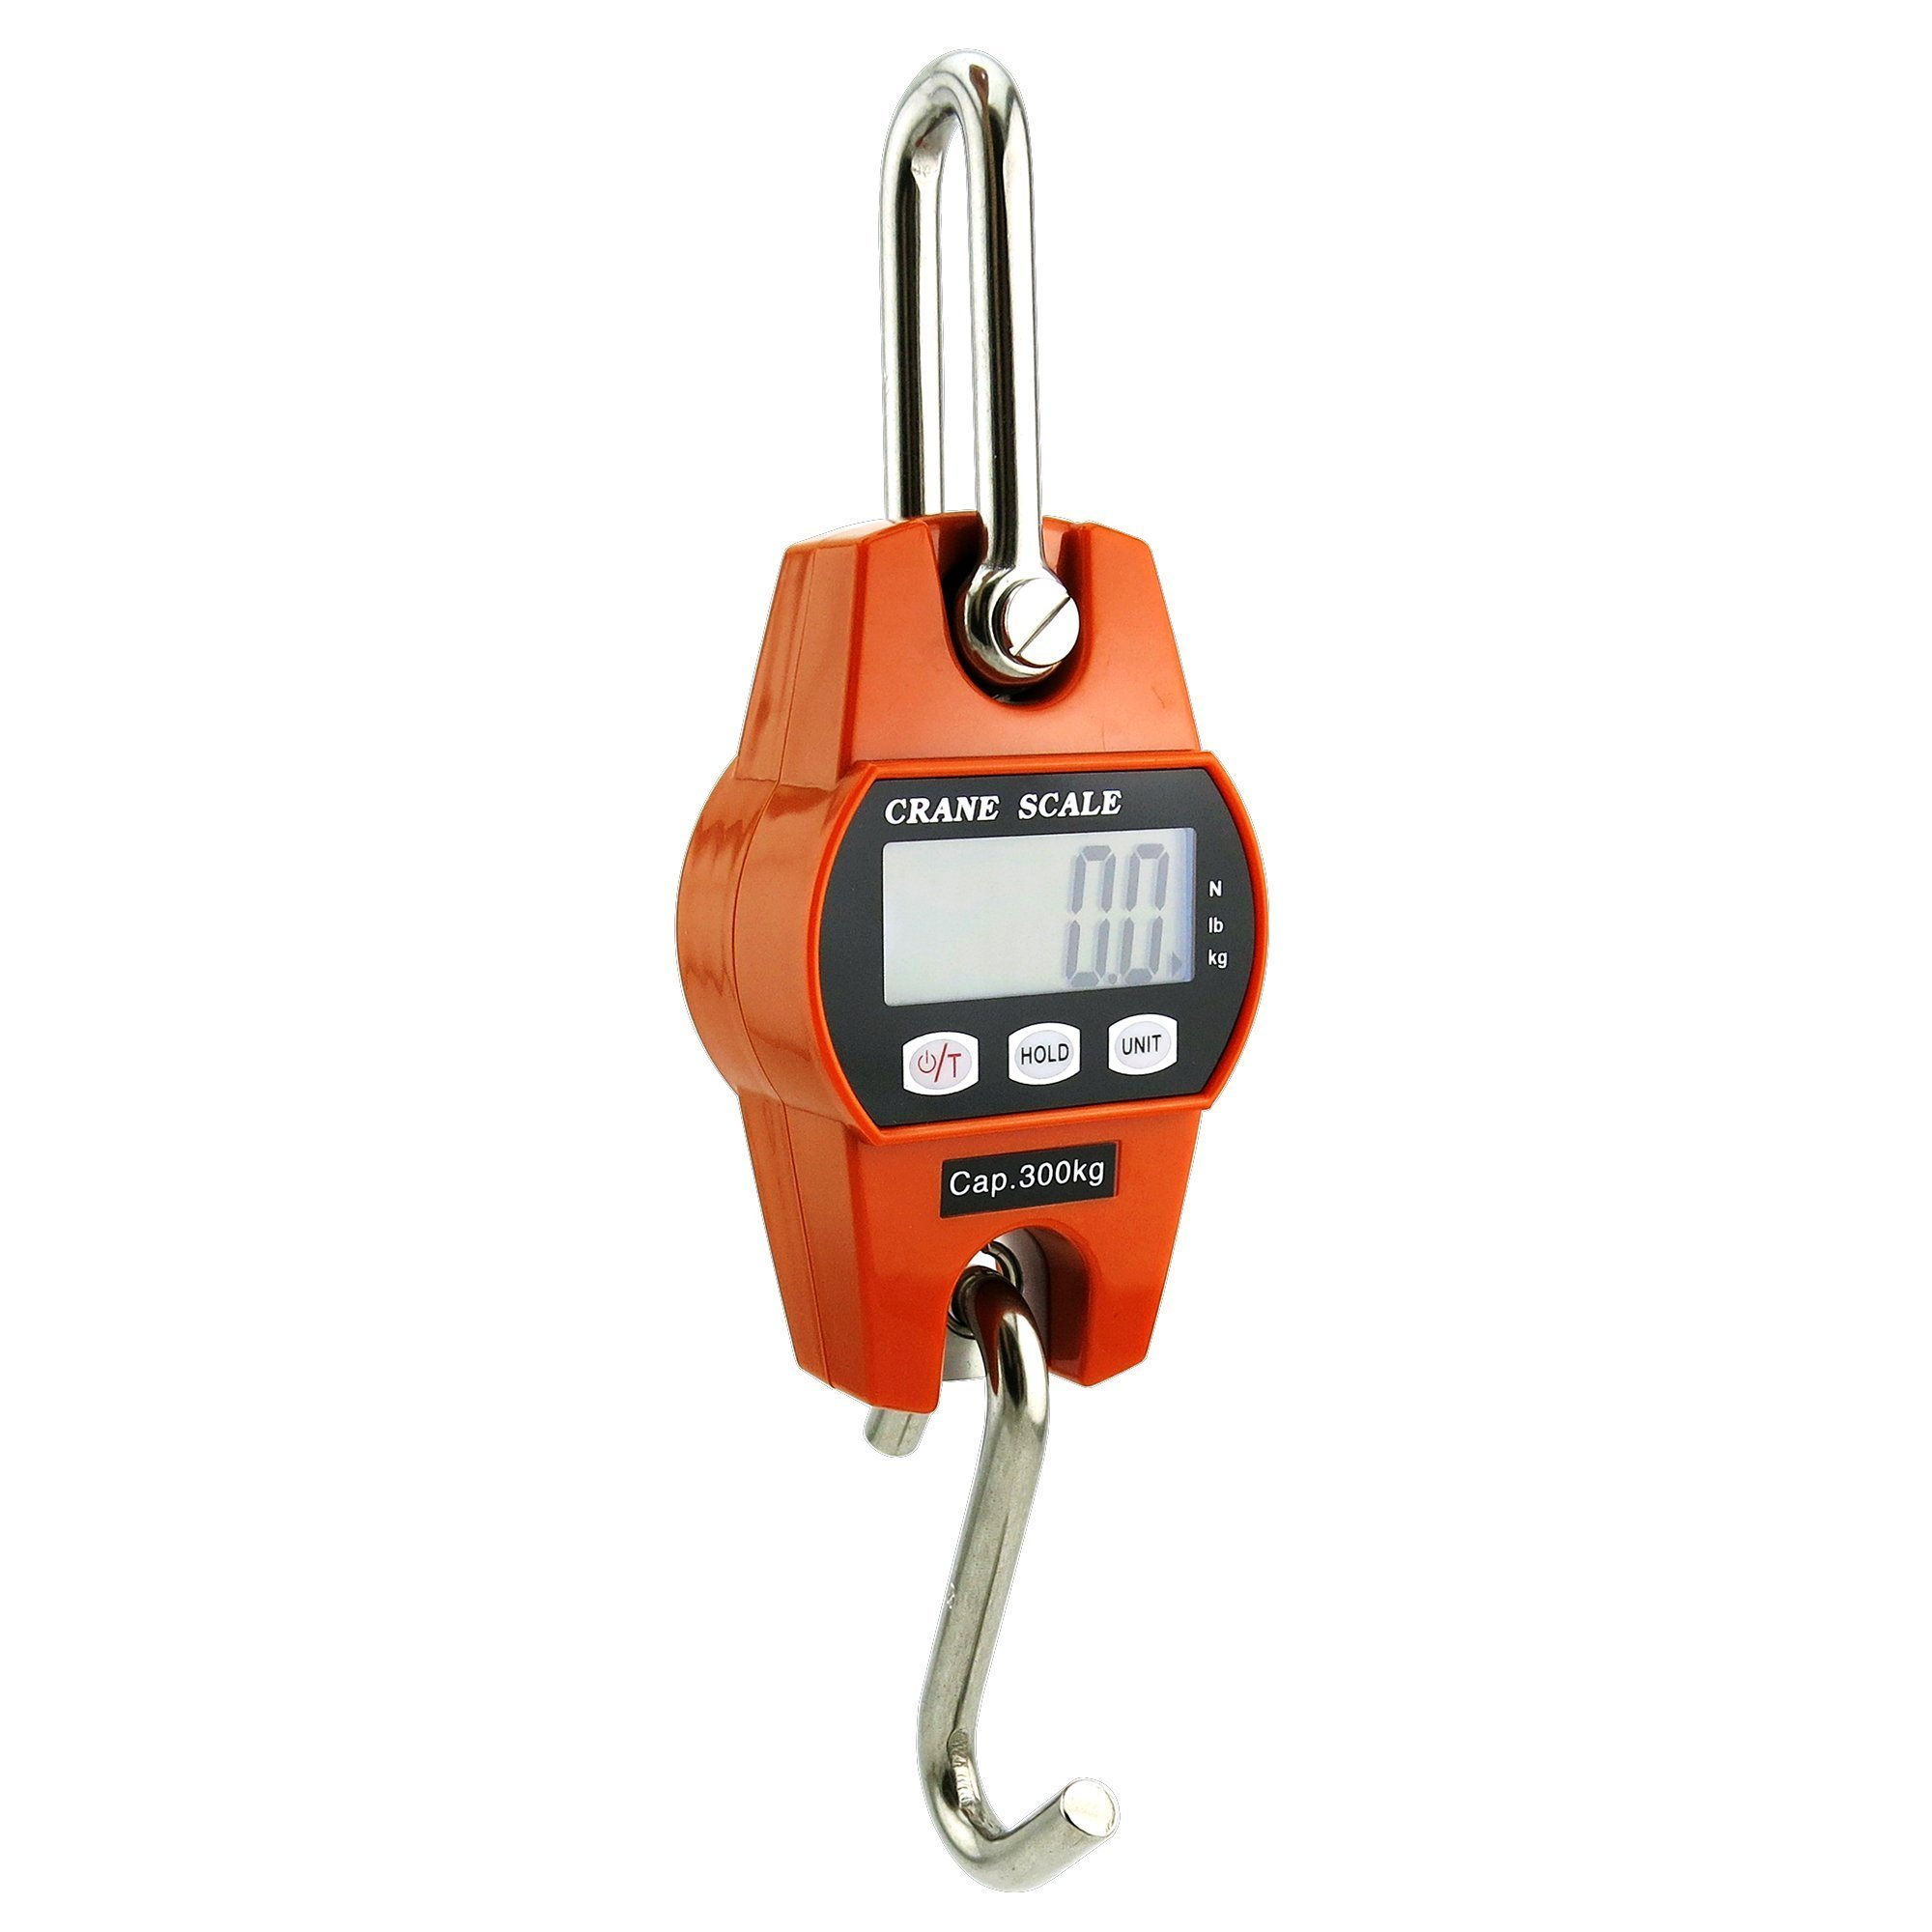 Outmate Mini Digital Crane Scale 300kg/600lbs with LED(Plastic Shell,Orange) by Outmate